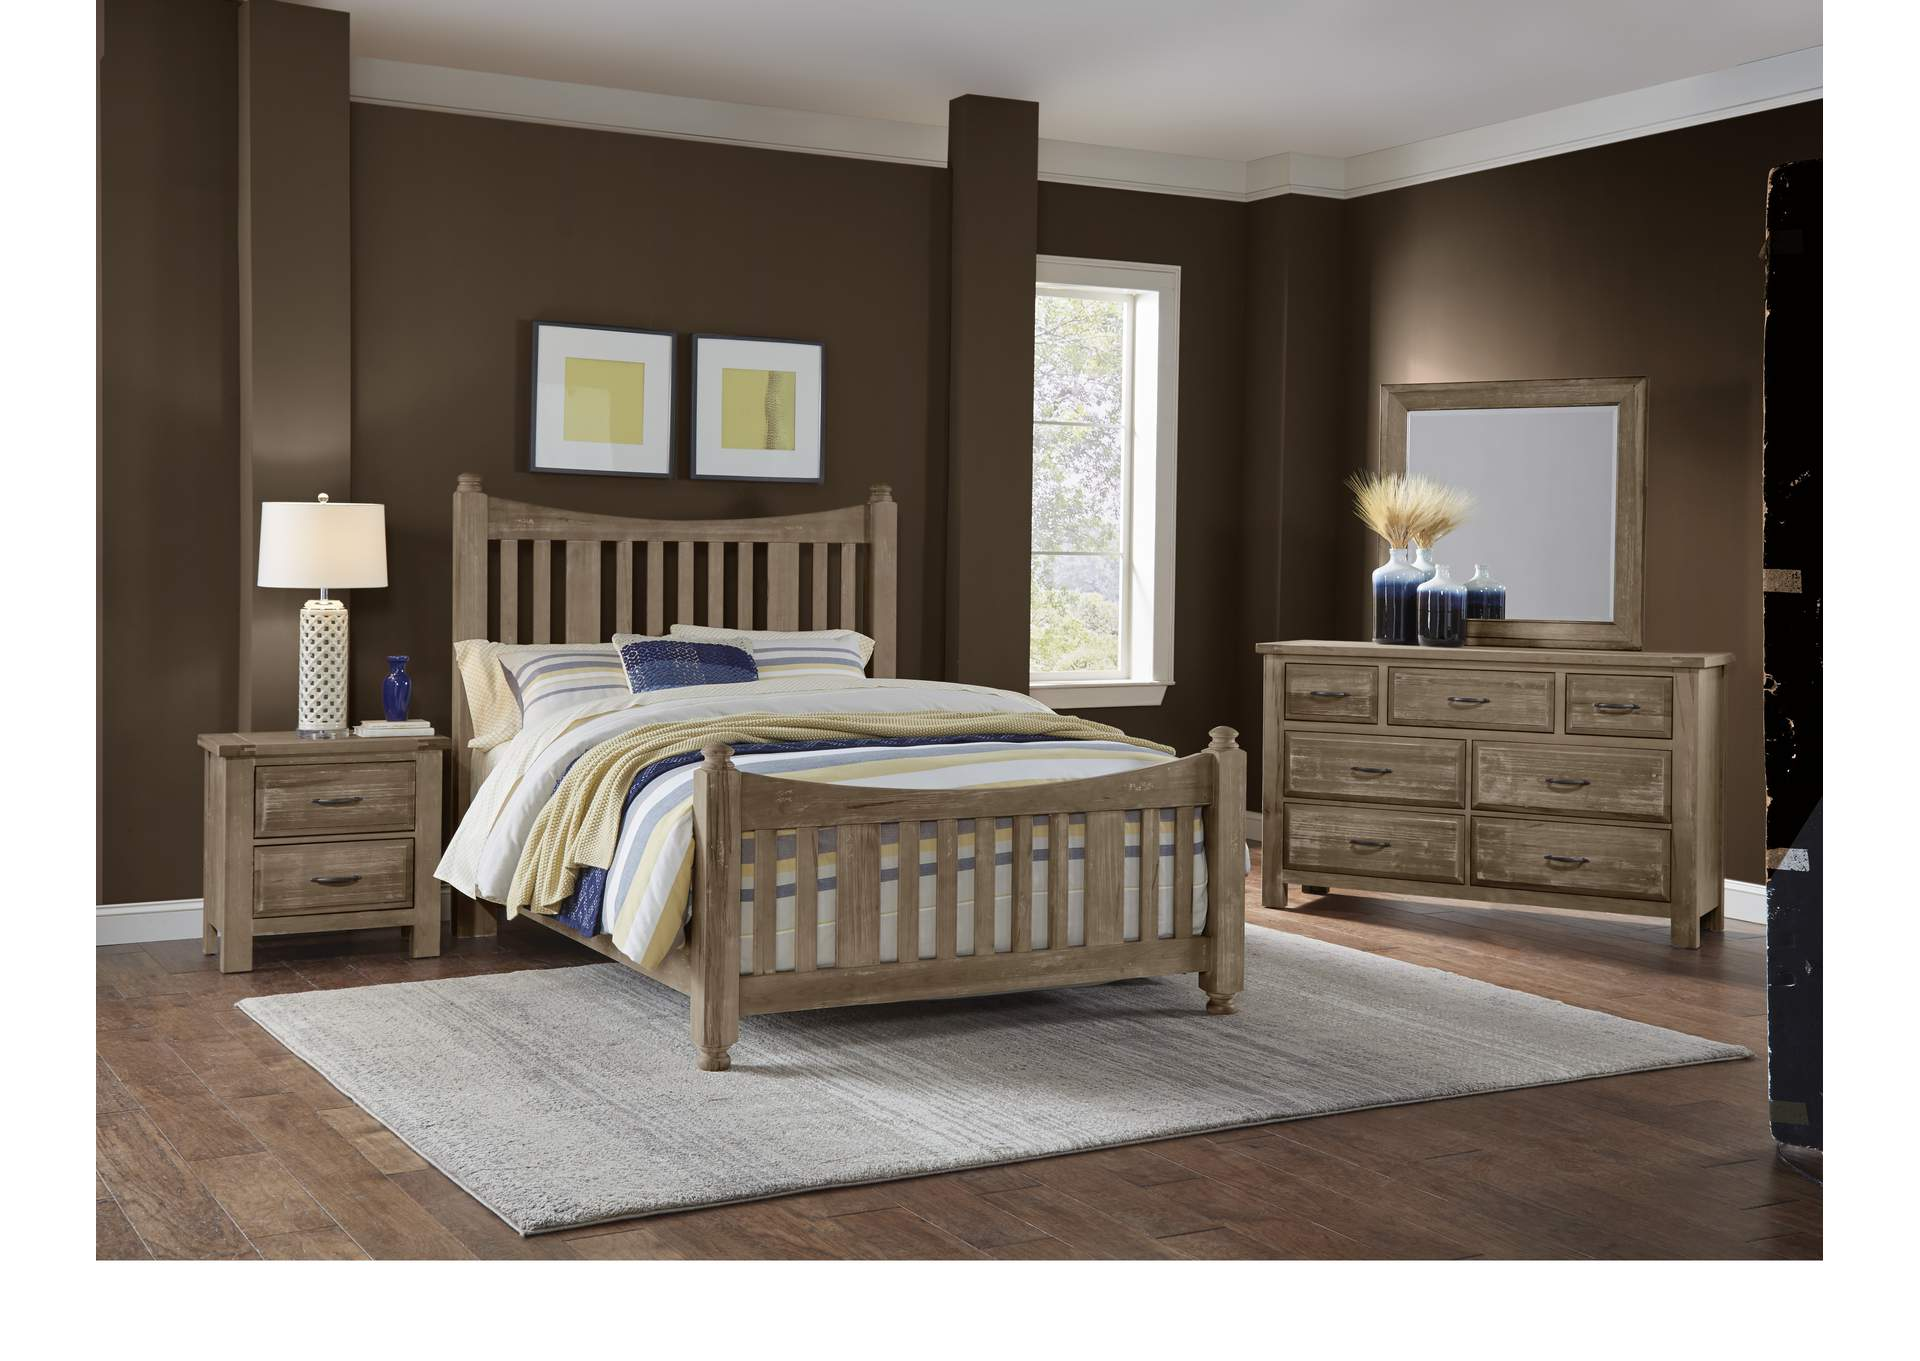 115 - Maple Road Weathered Gray Triple Dresser - 7 Drawer,Vaughan-Bassett